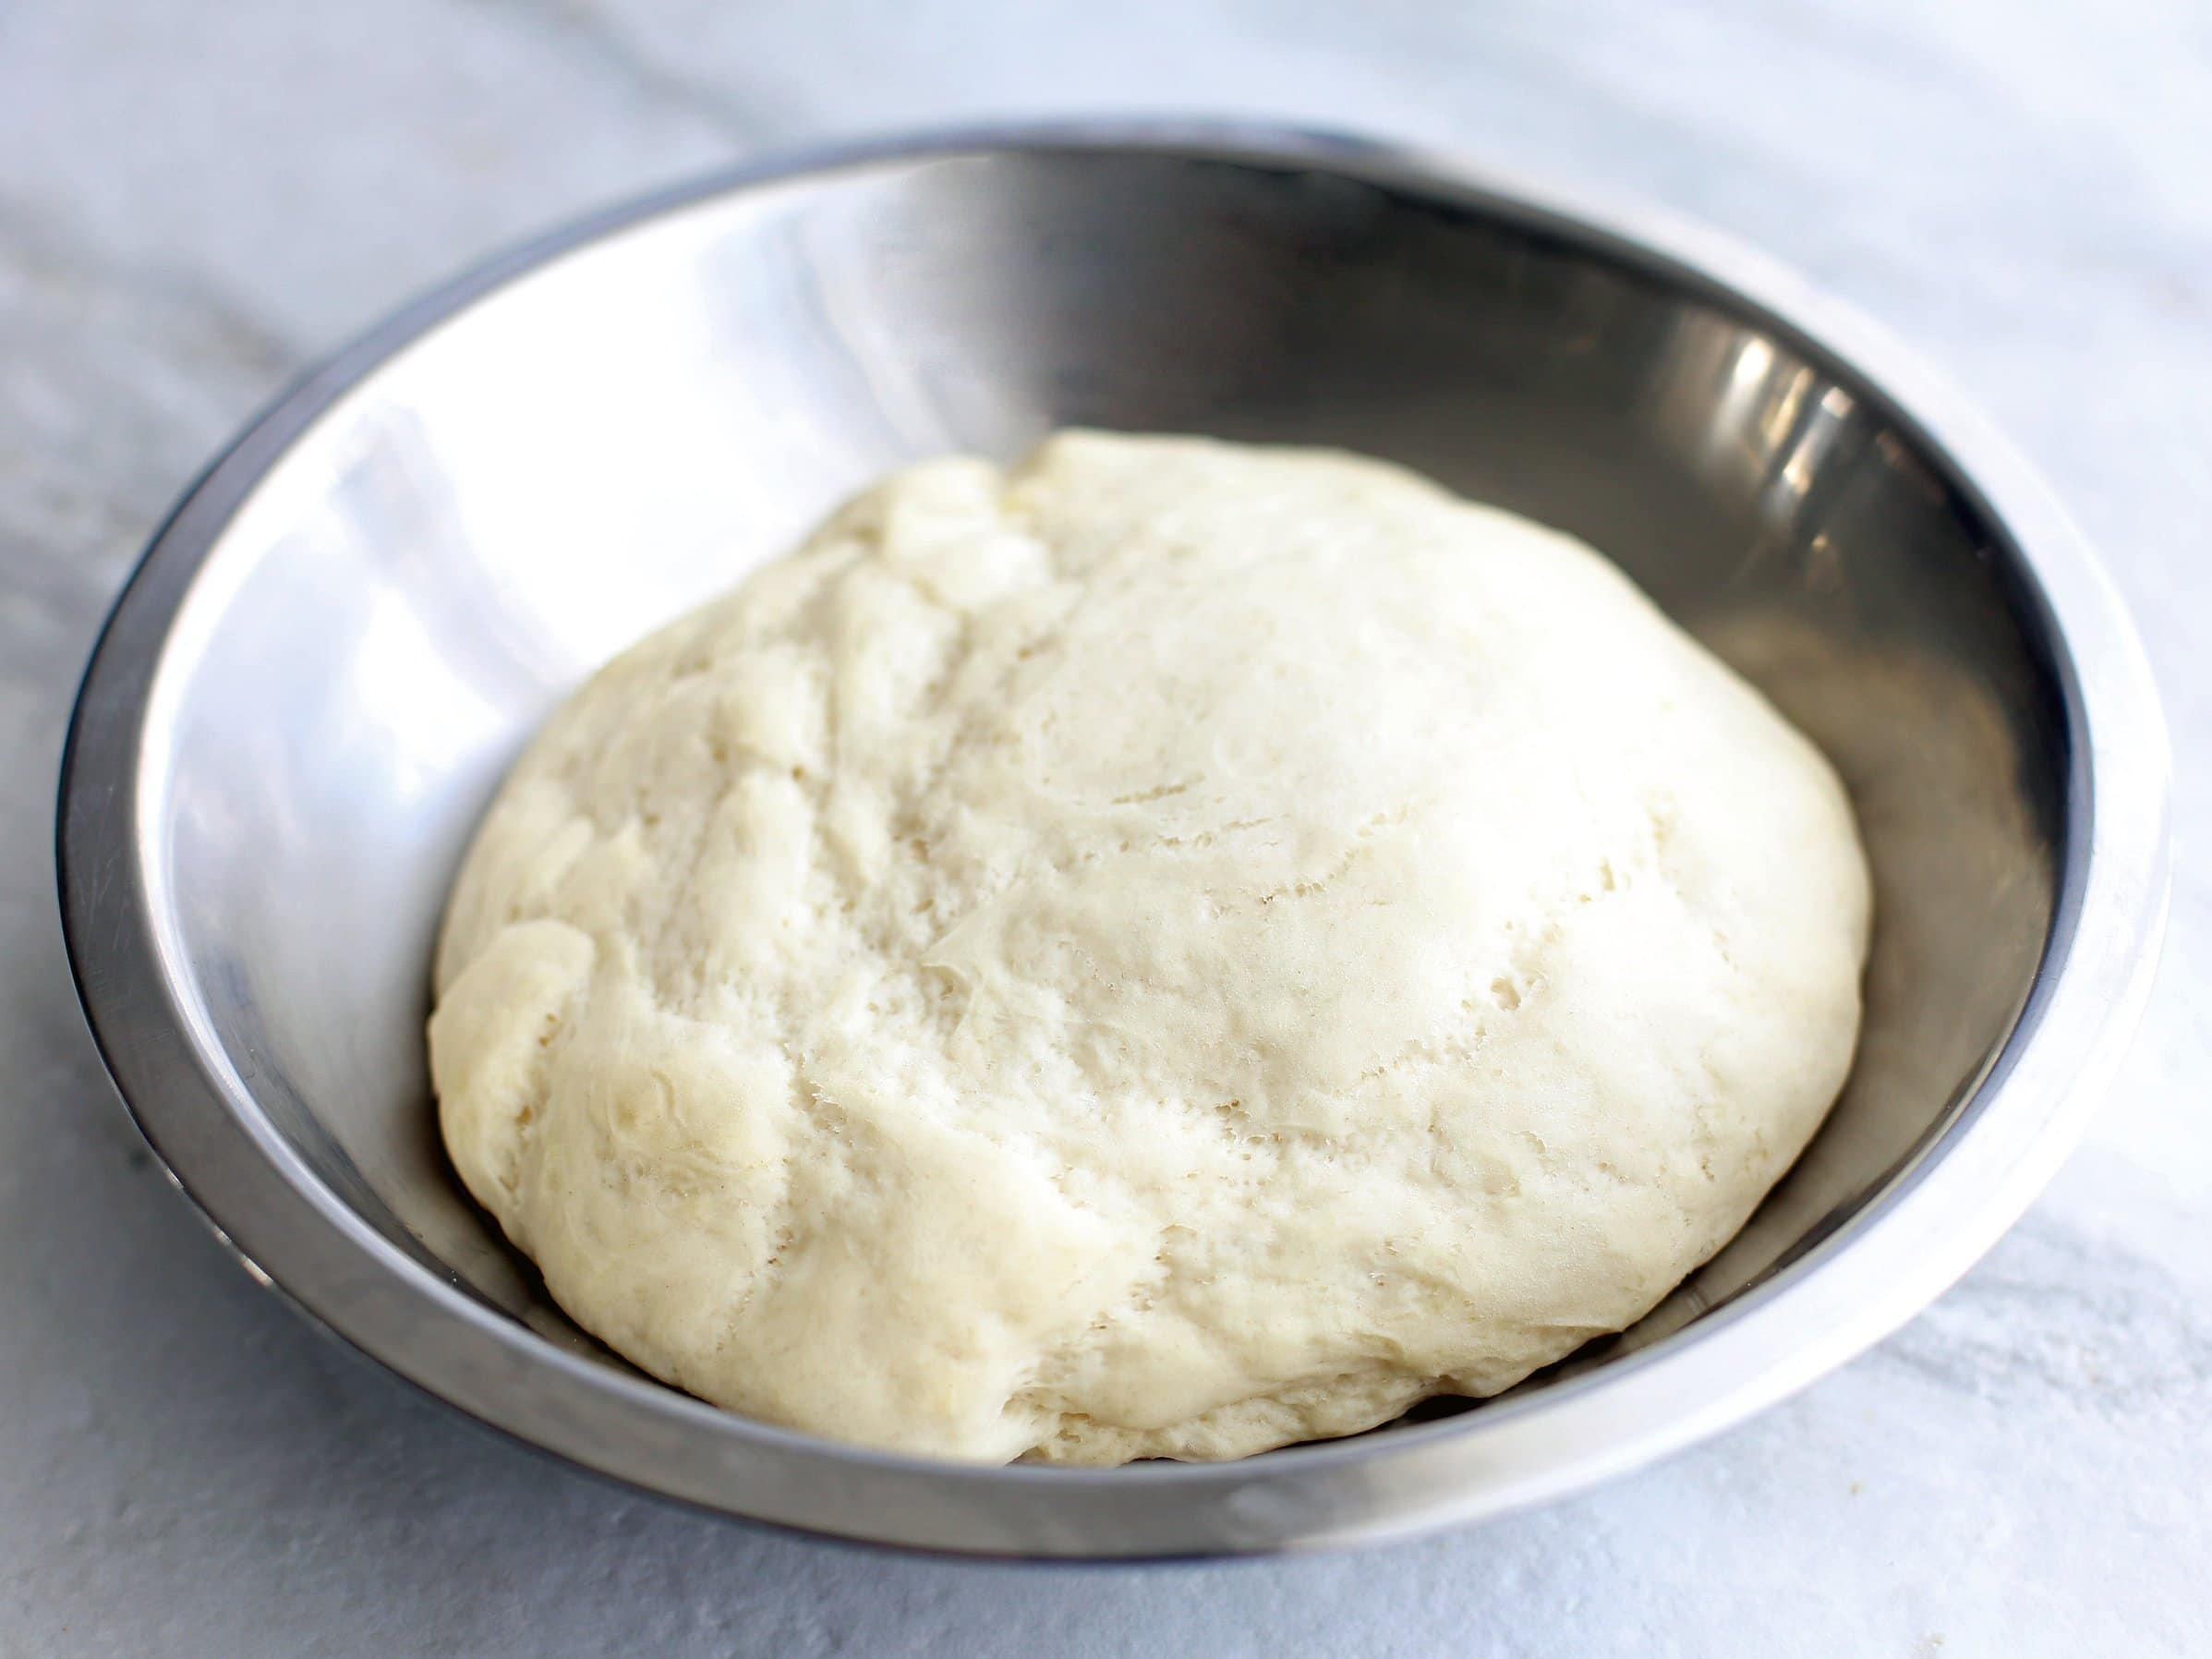 Proved pizza dough in a metal bowl.